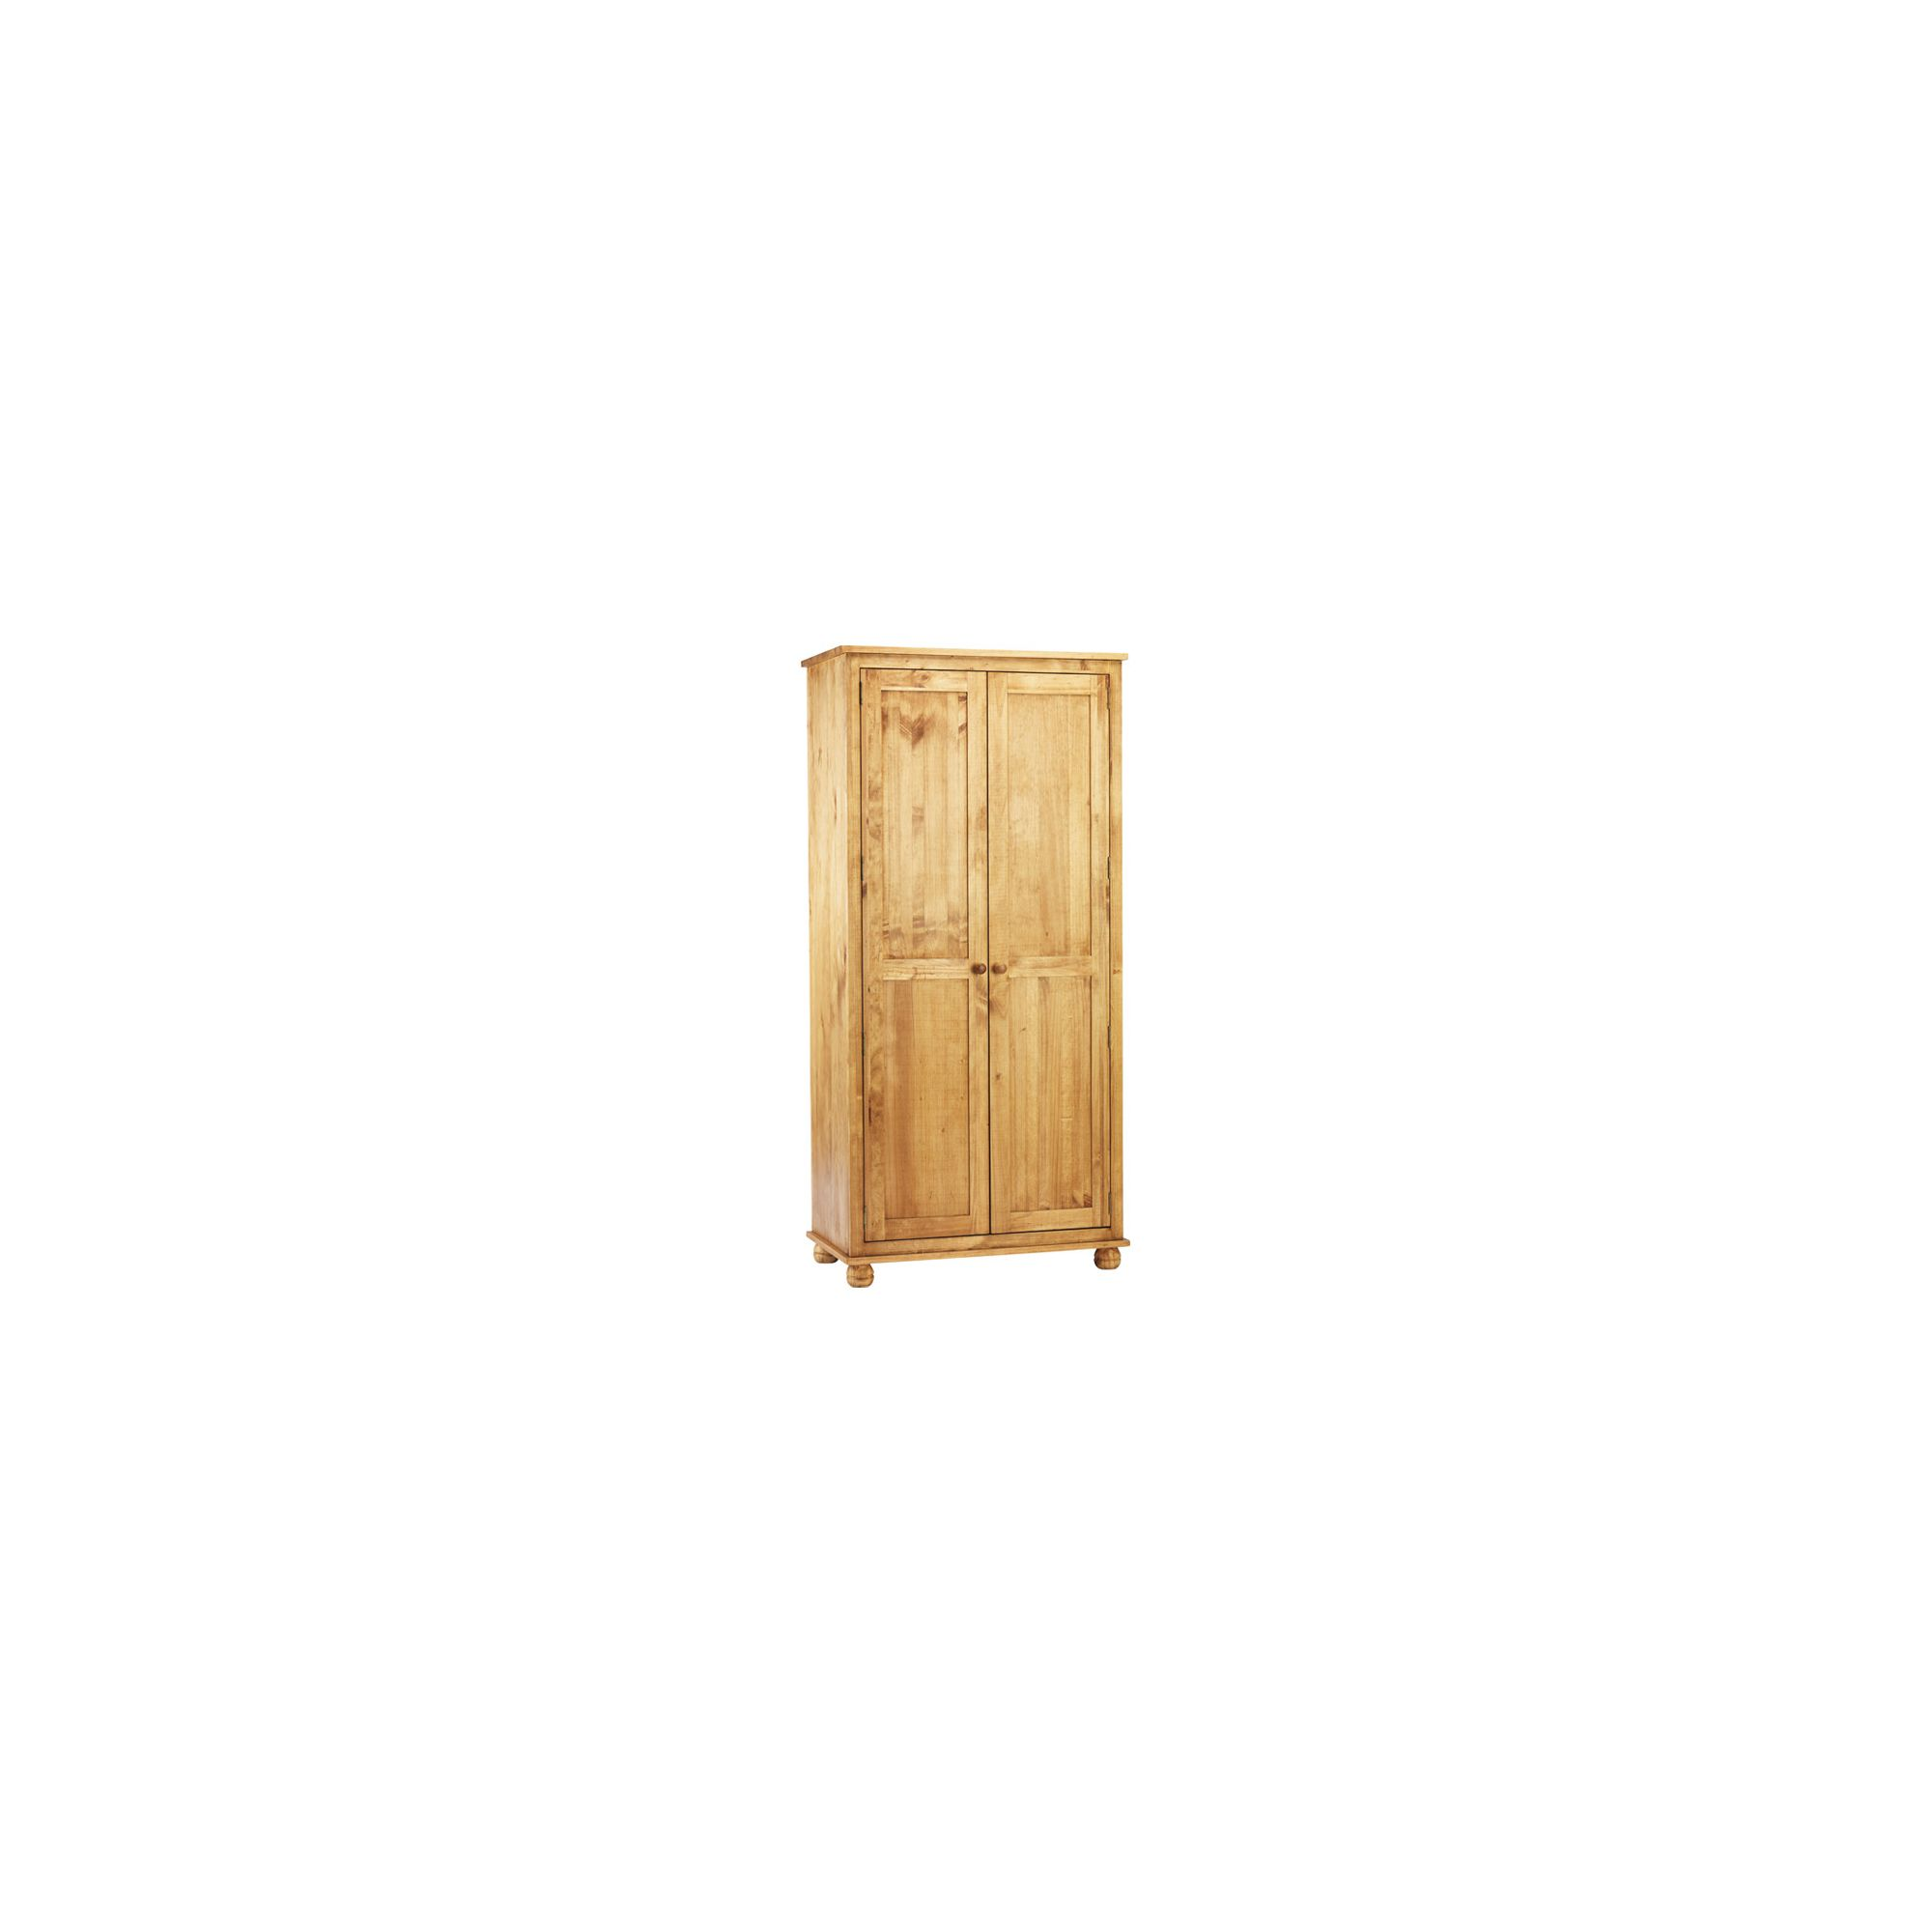 Thorndon Belmont Double Wardrobe in Wax at Tesco Direct